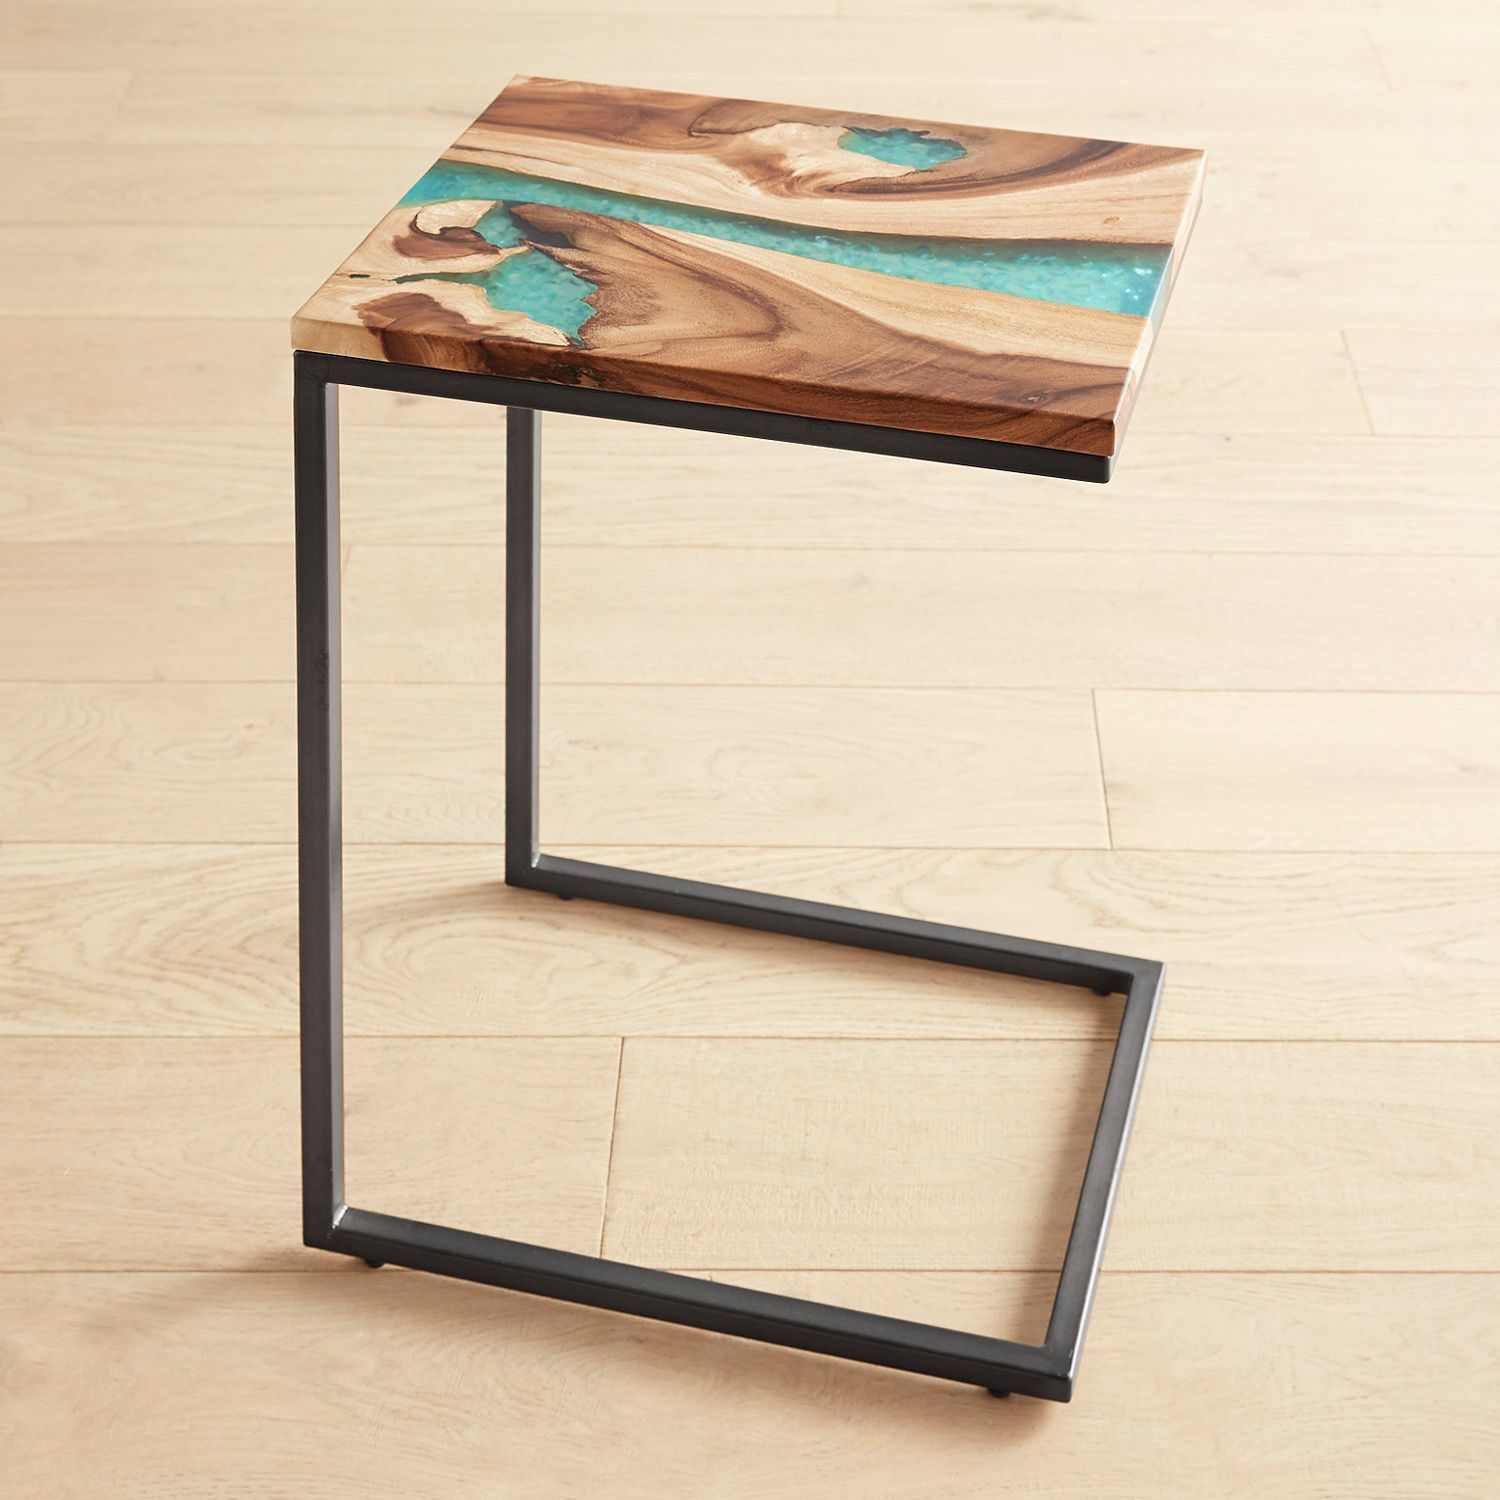 Moraine Wood Teal Resin C Table Pier 1 Imports C Table Wood